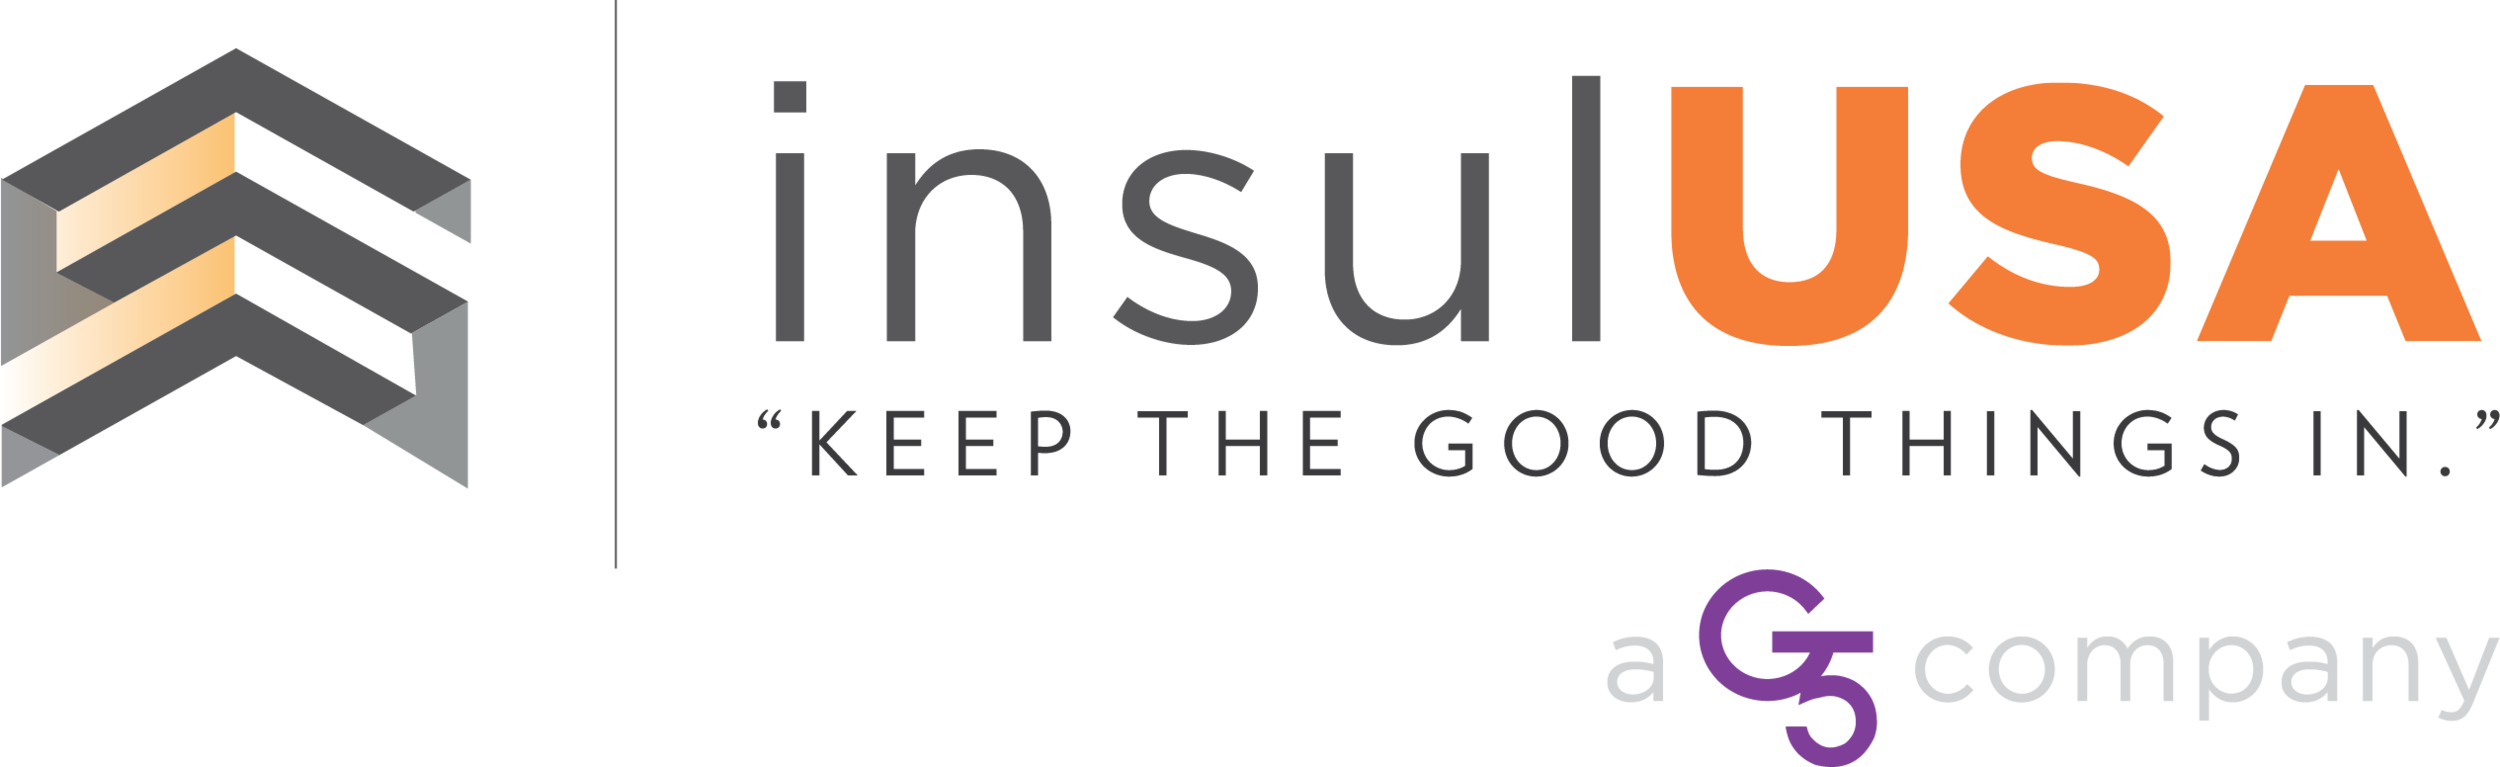 insulUSA.png